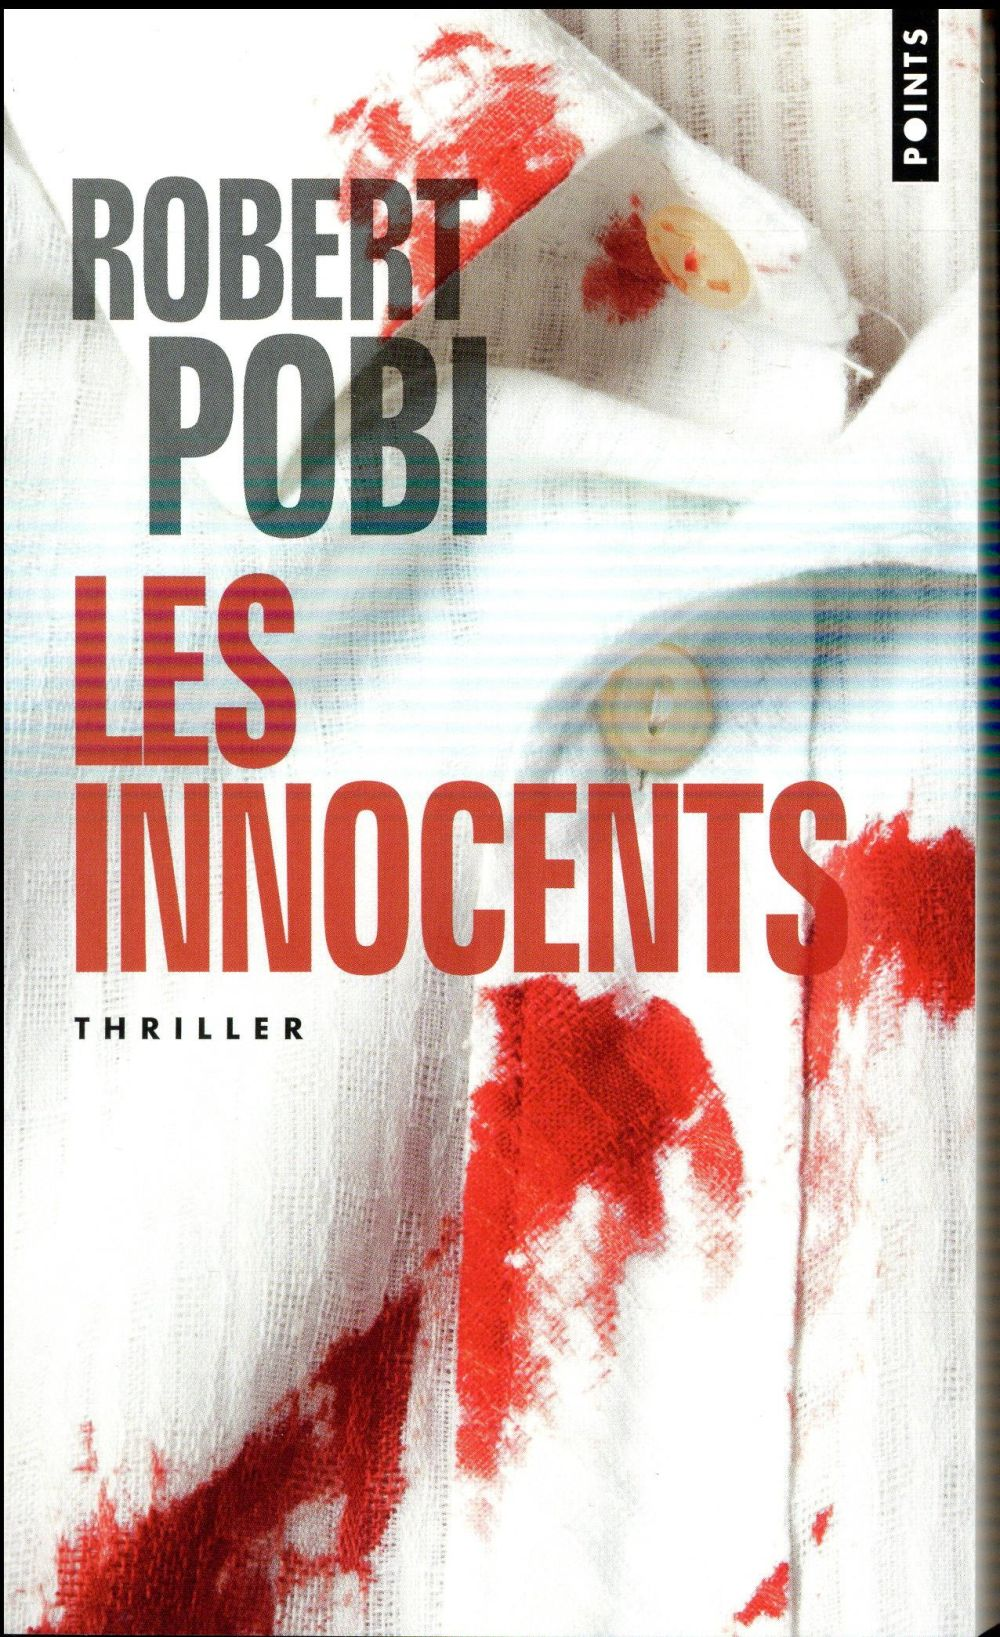 LES INNOCENTS Pobi Robert Points